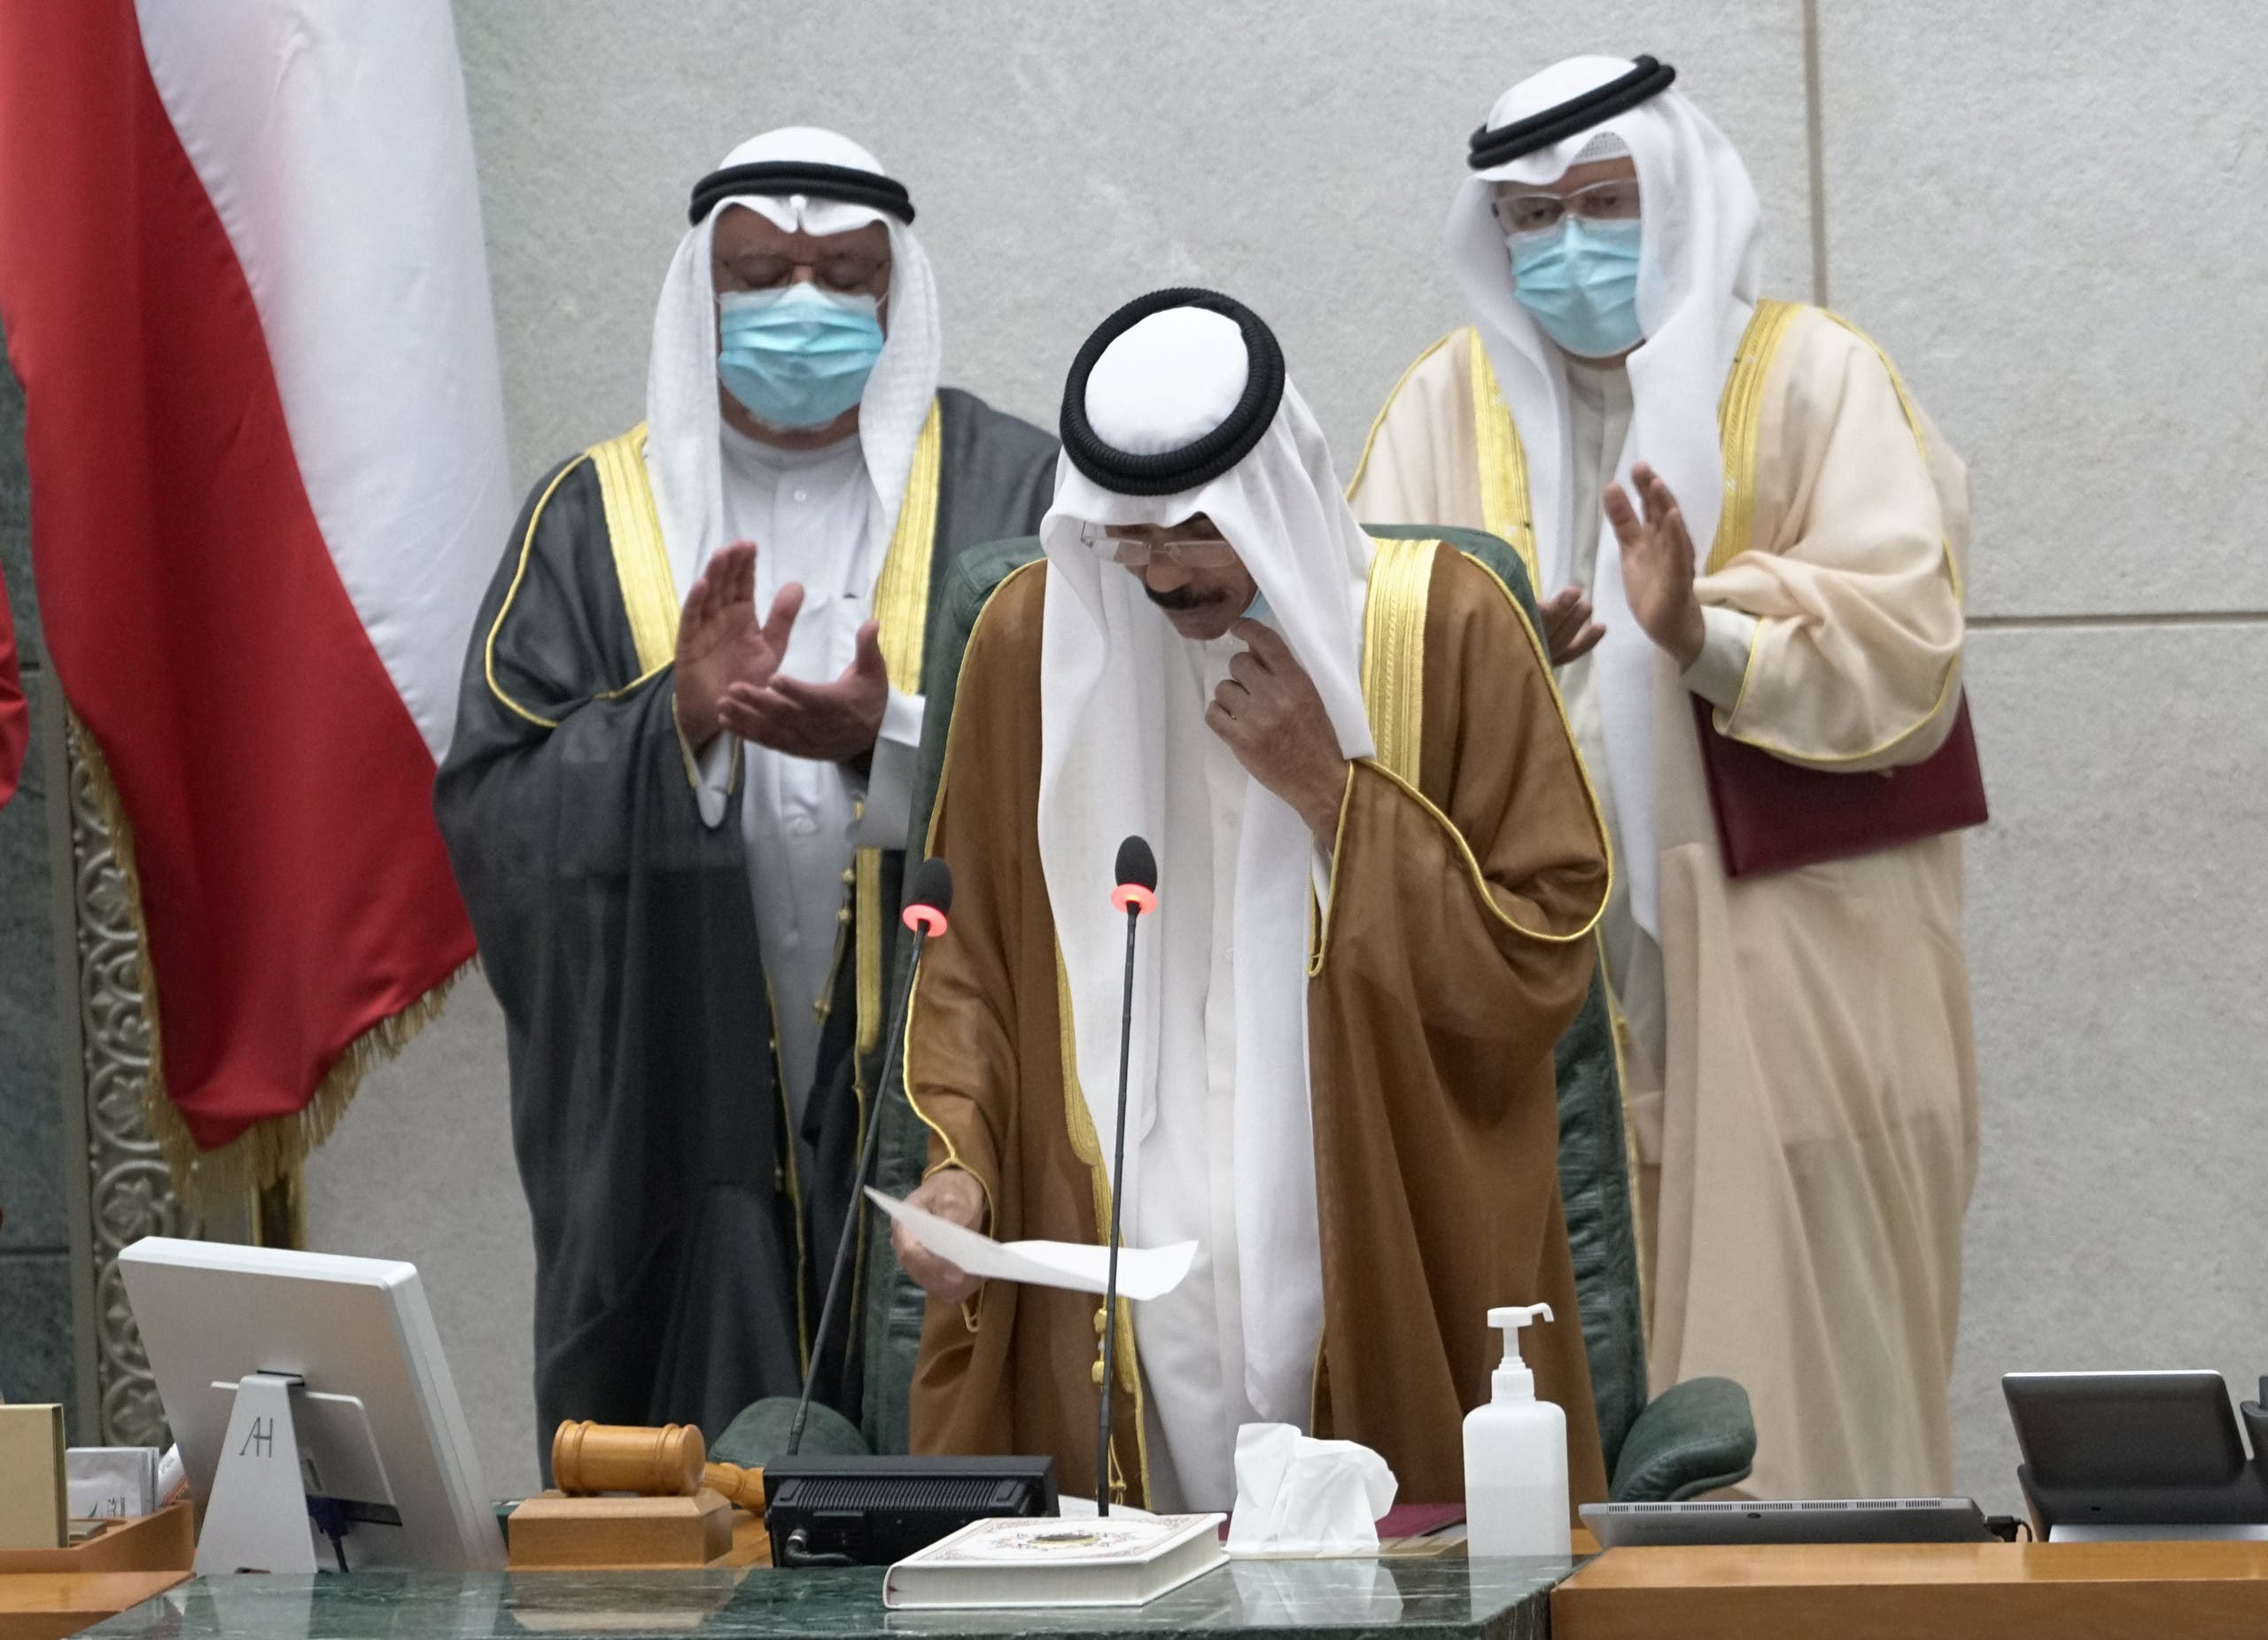 Kuwait's new Emir Nawwaf al-Ahmad al-Sabah takes the oath of office. (Reuters)